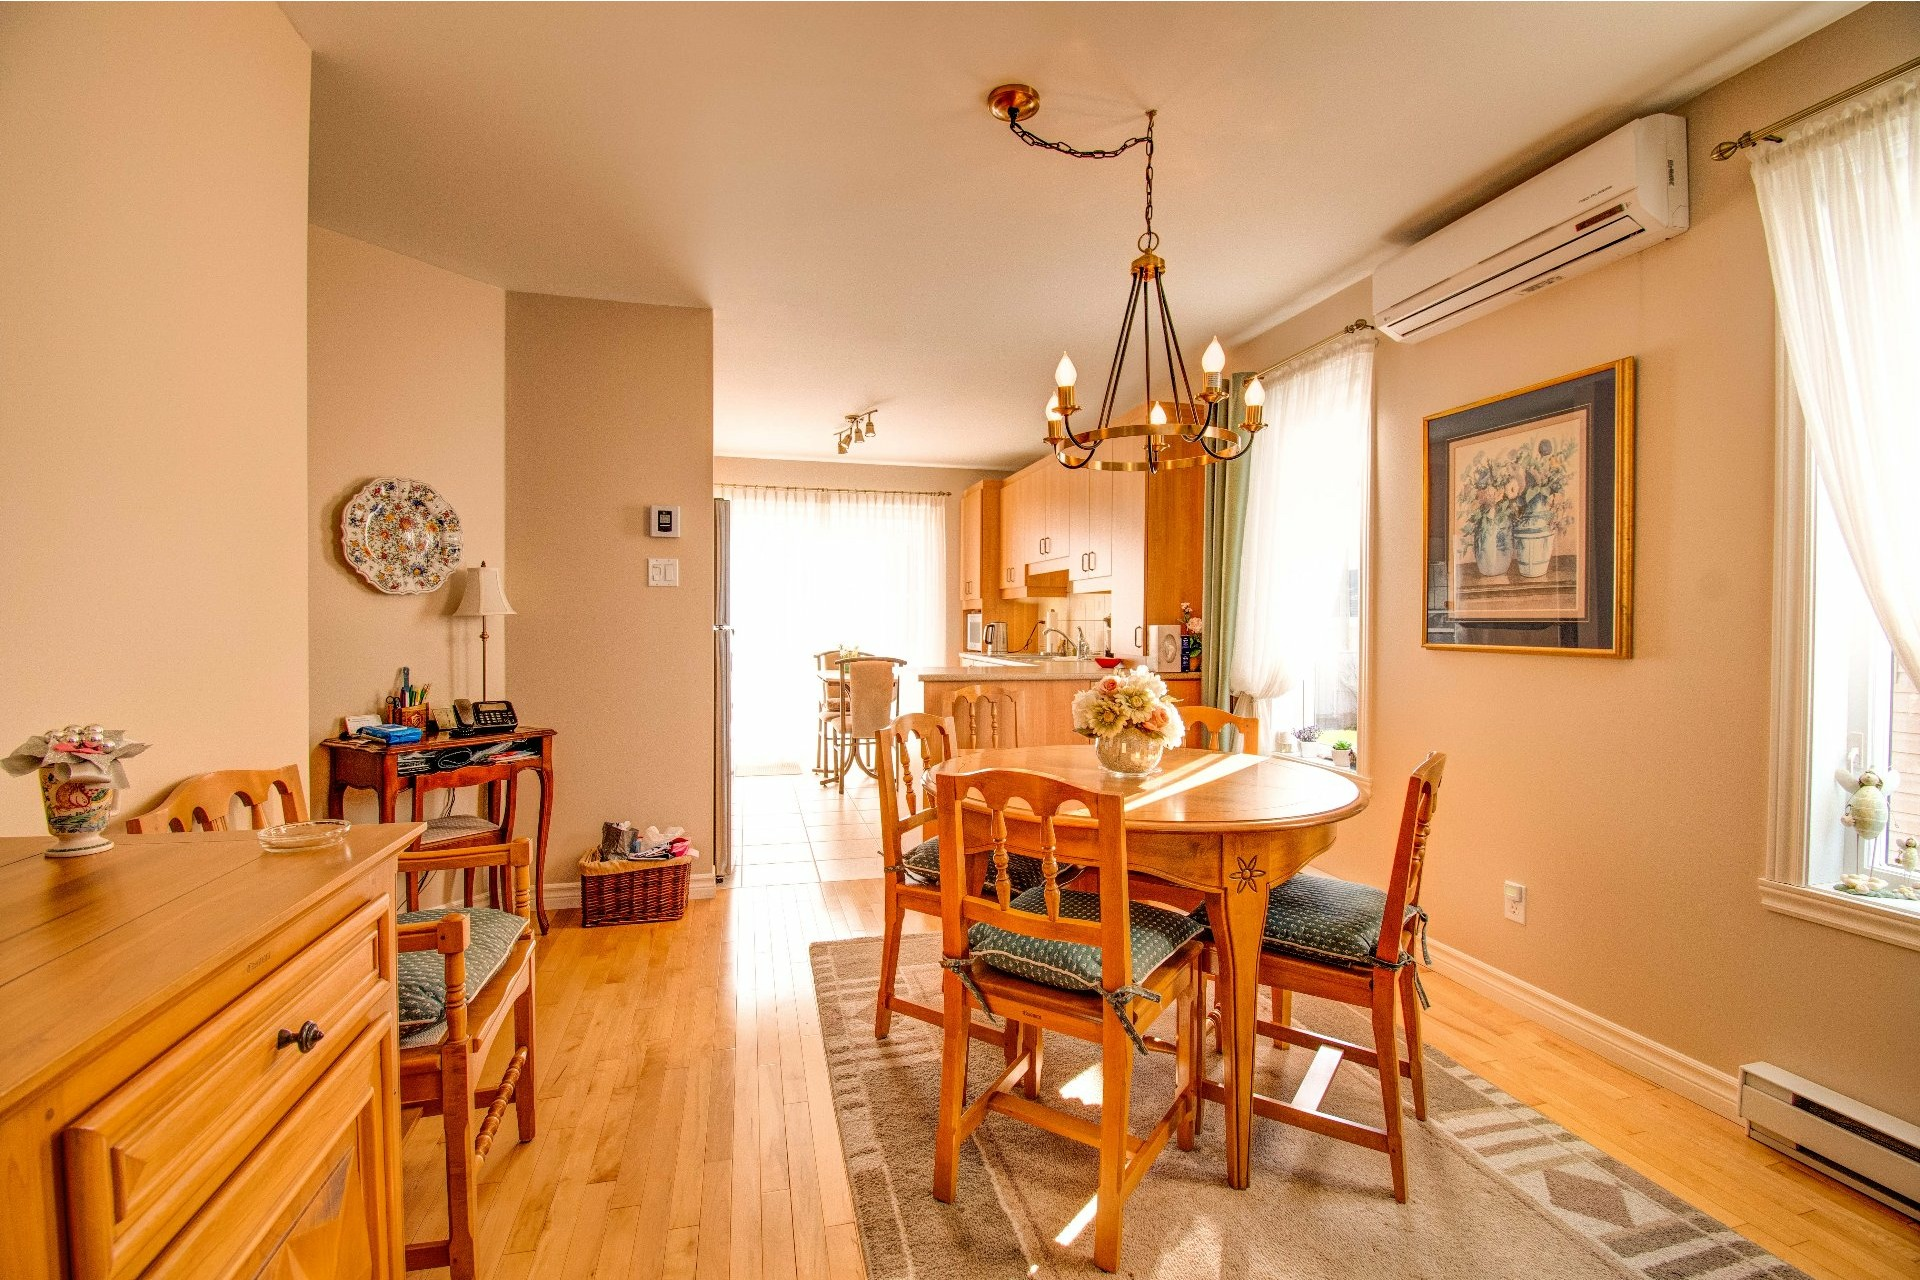 image 5 - House For sale Trois-Rivières - 13 rooms